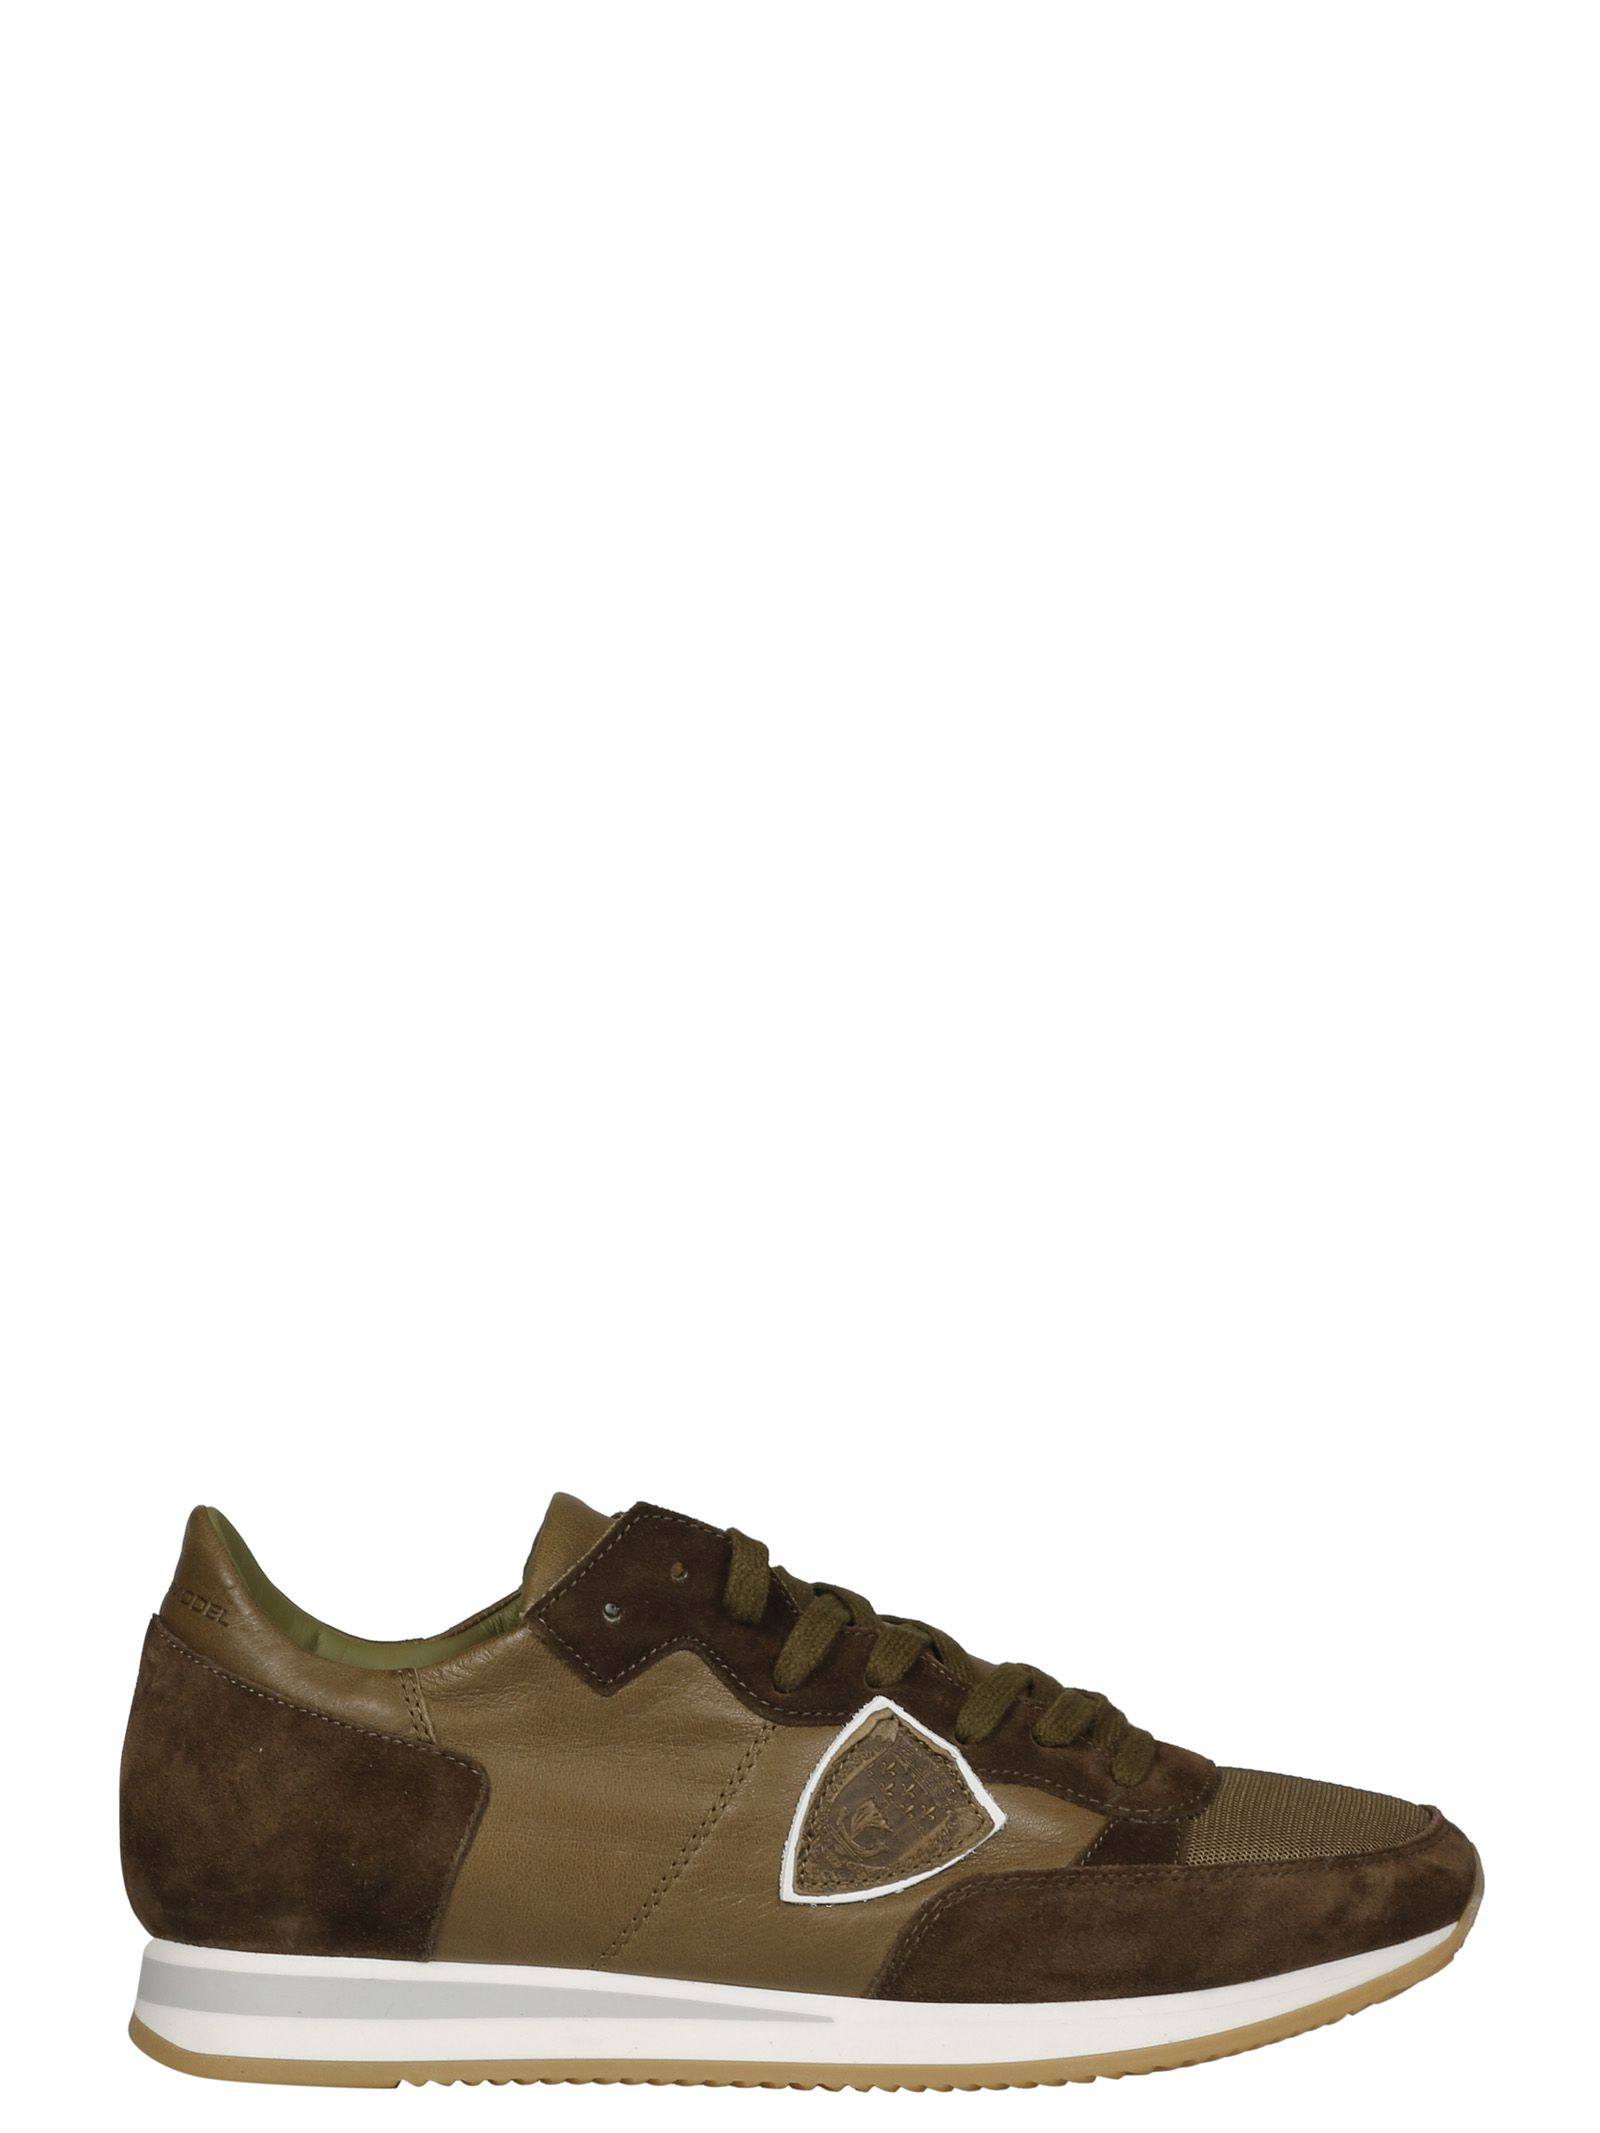 Philippe Model Laced-up Sneakers